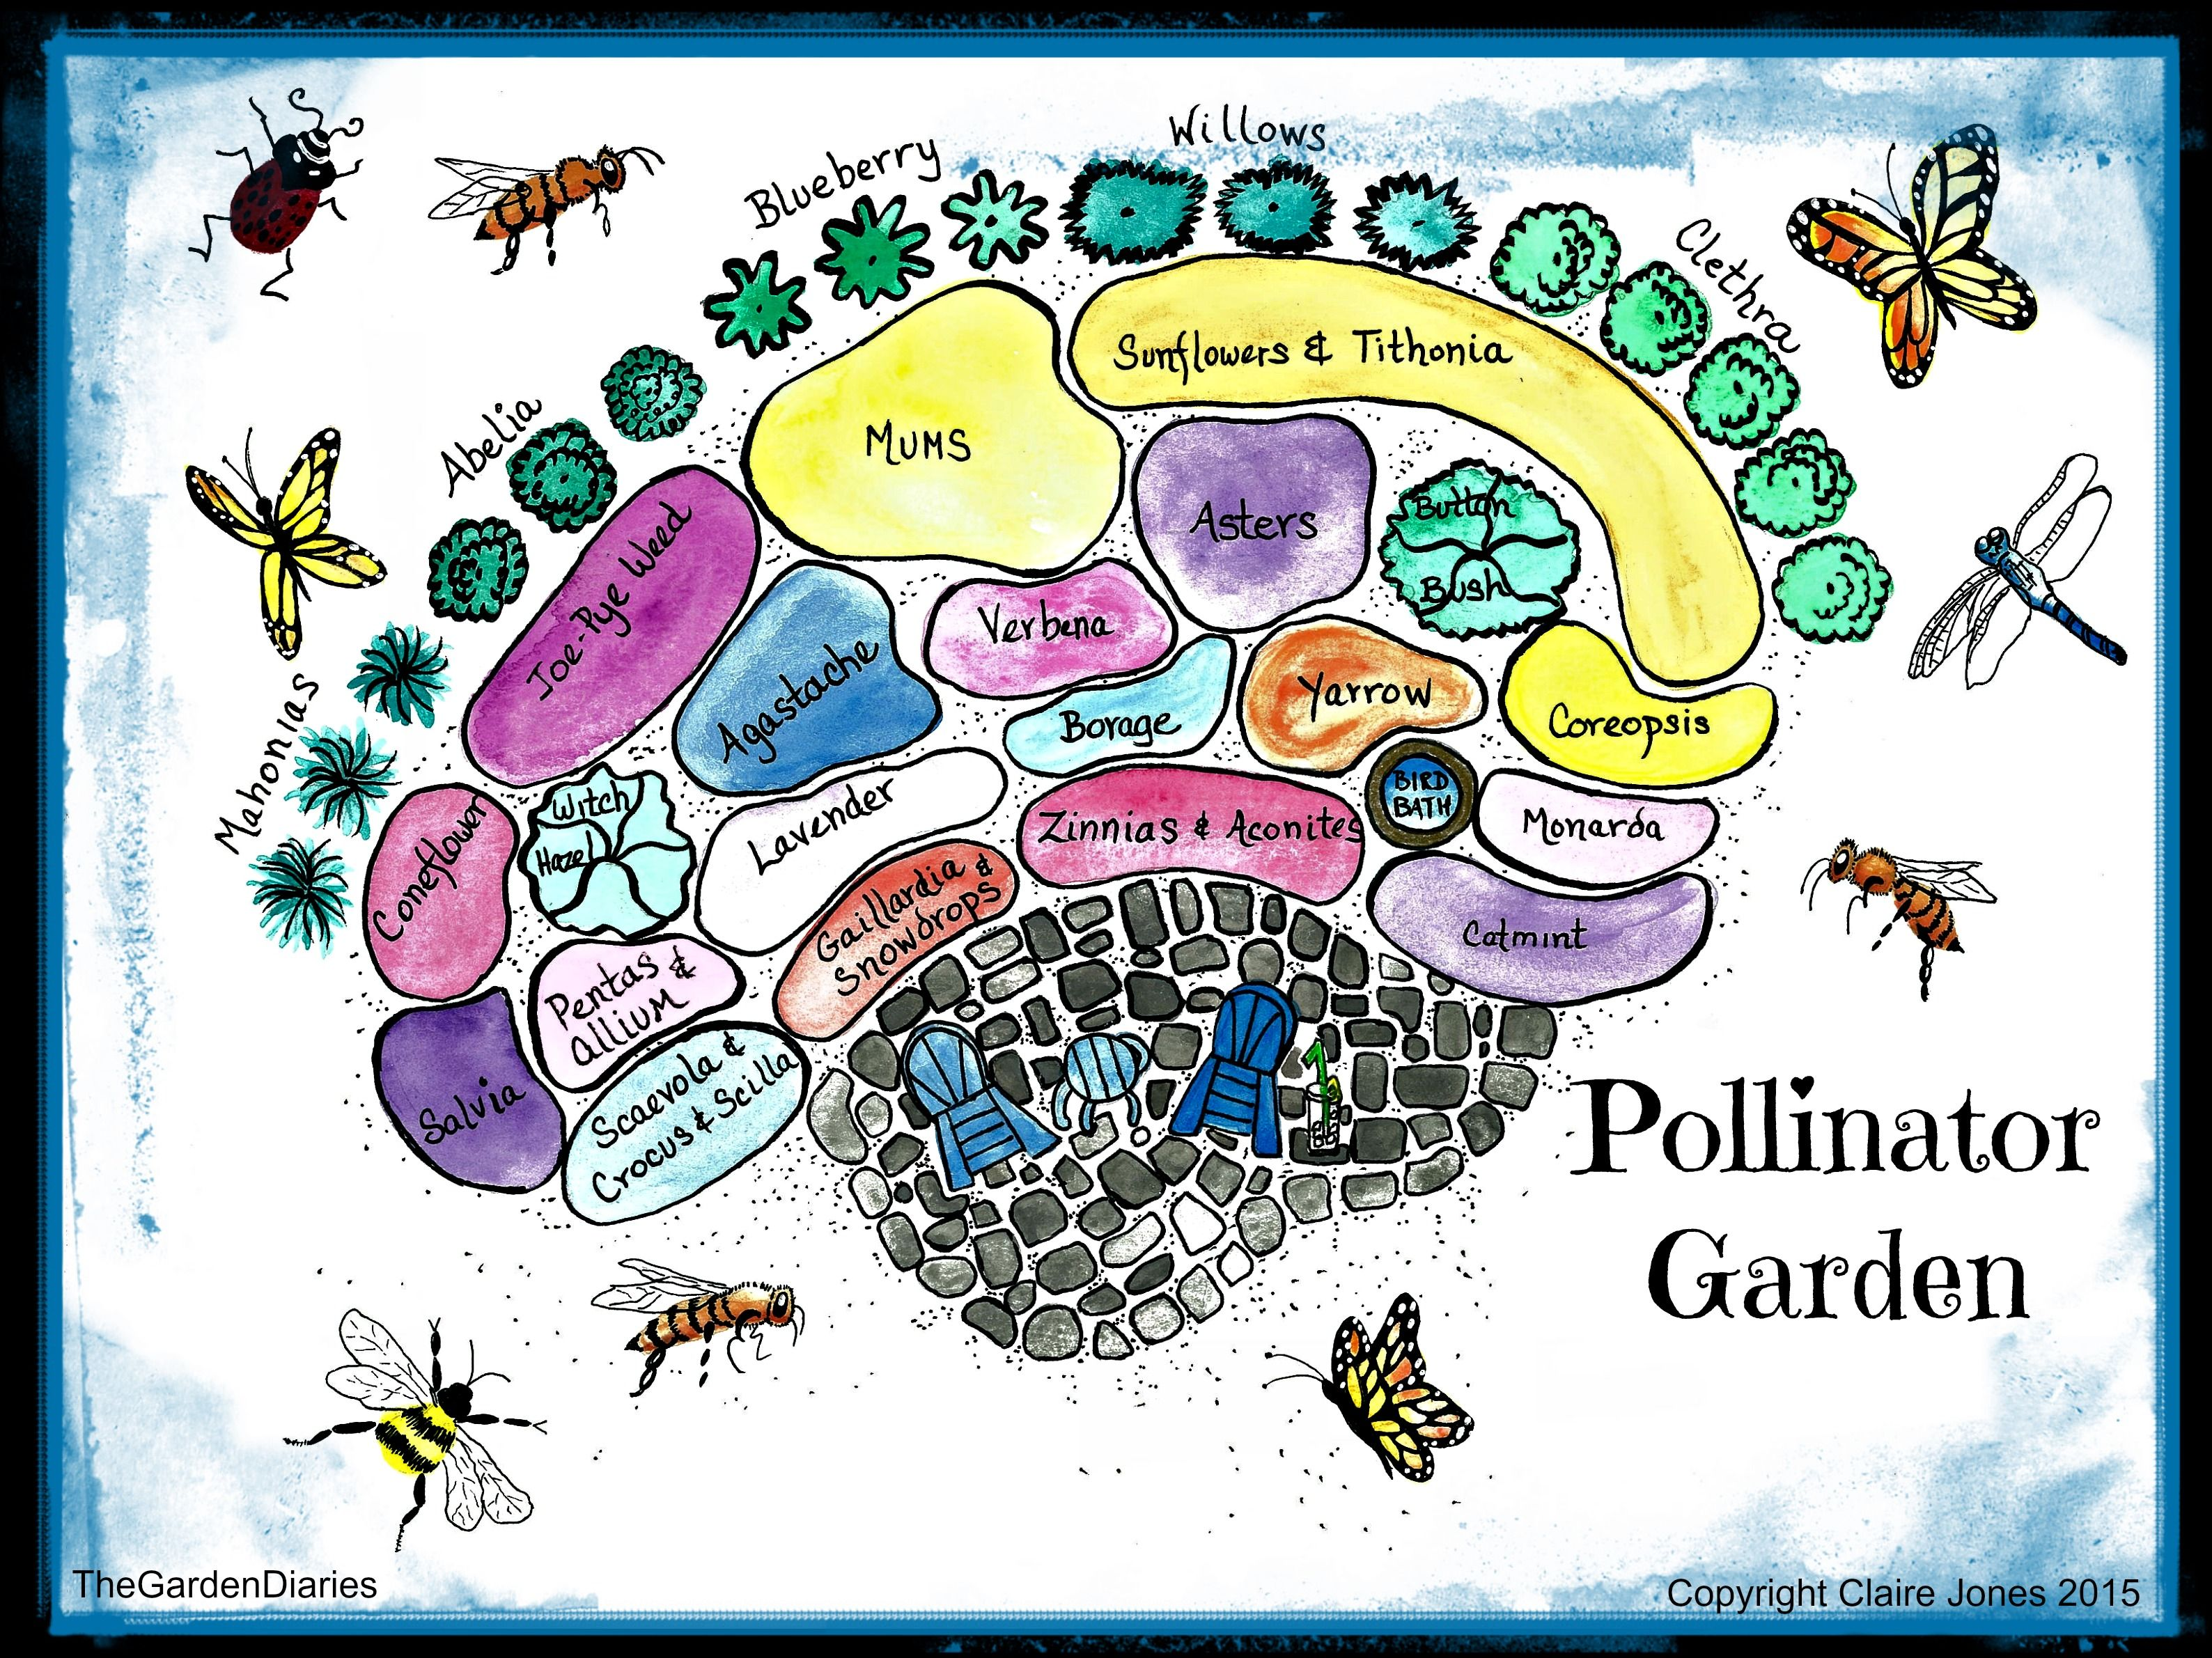 Garden Design with Pollinator Plants Pin by Claire Jones on Original Pollination Posters  Pinterest